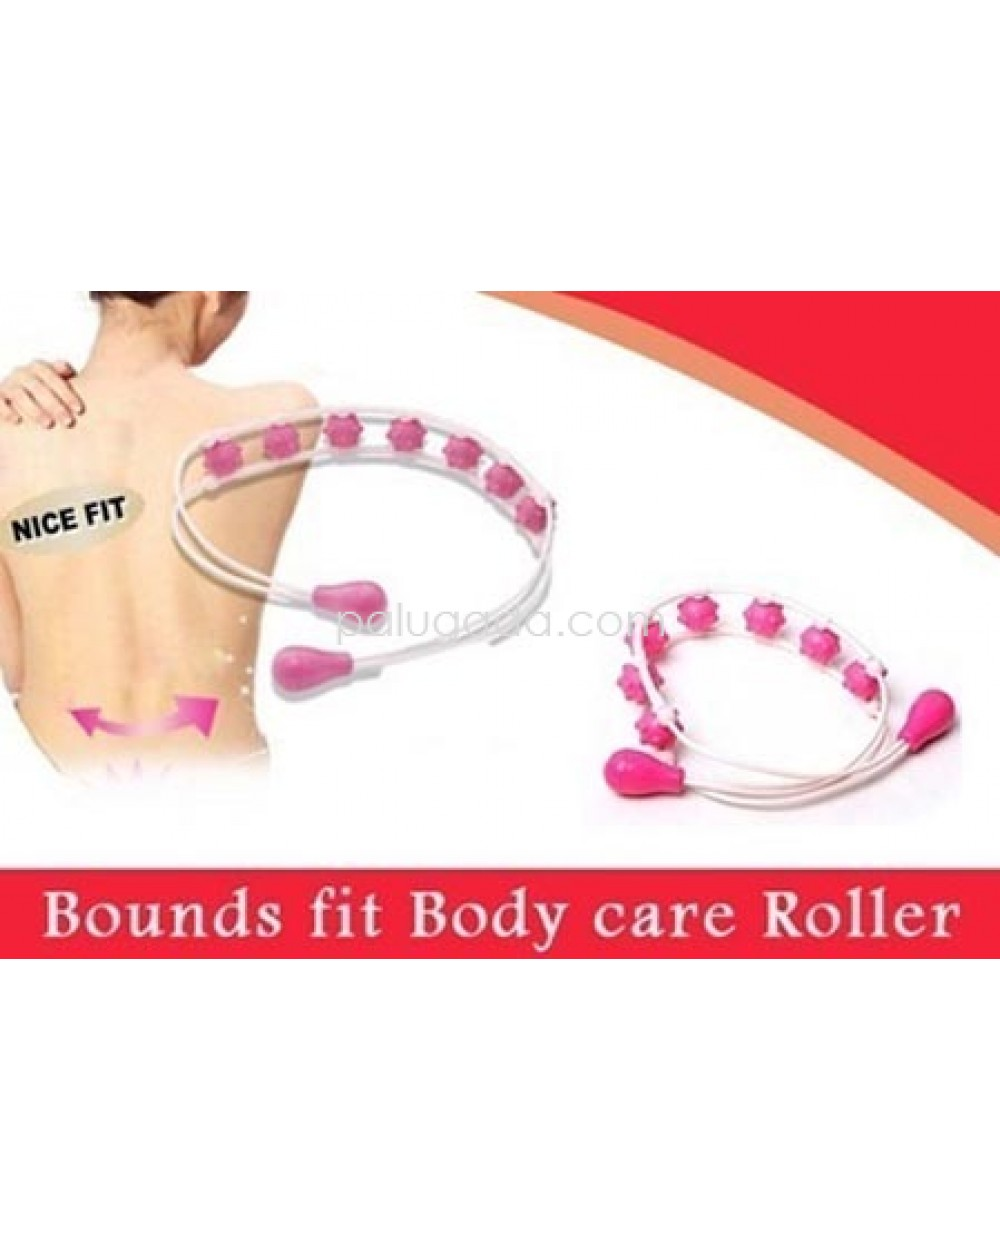 Bounds Fit - Body Care Roller